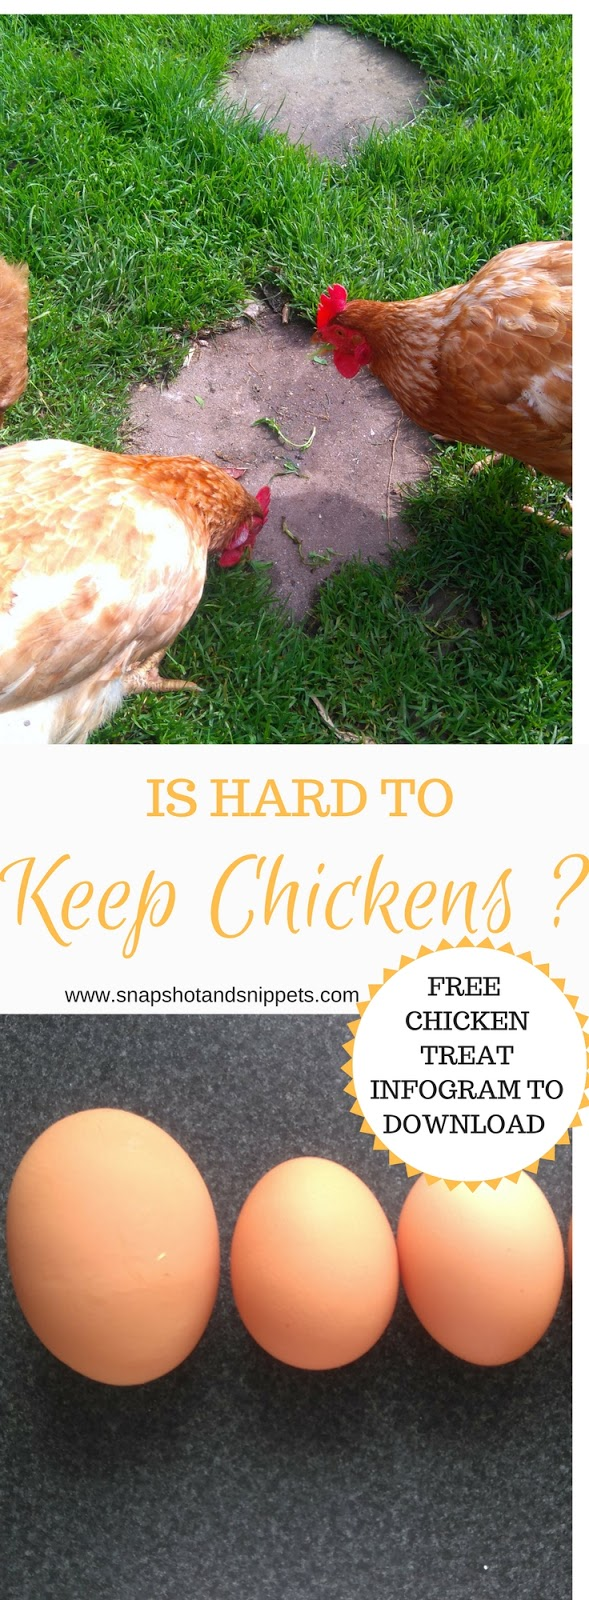 Is it hard to Keep Chickens? - Snapshots and Snippets